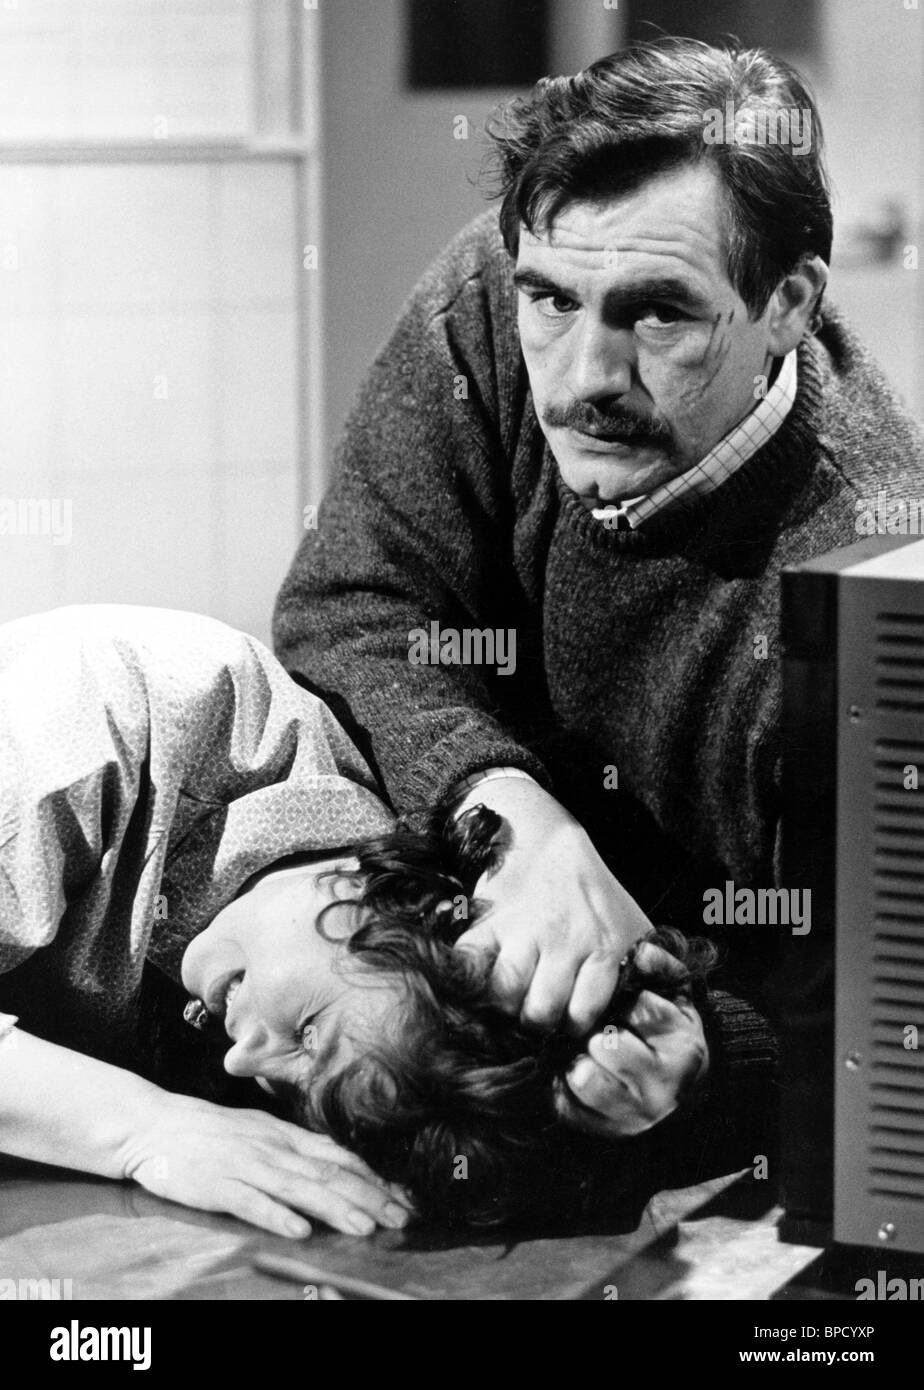 BRIAN COX, PRUNELLA SCALES, UNNATURAL CAUSES, 1986 - Stock Image